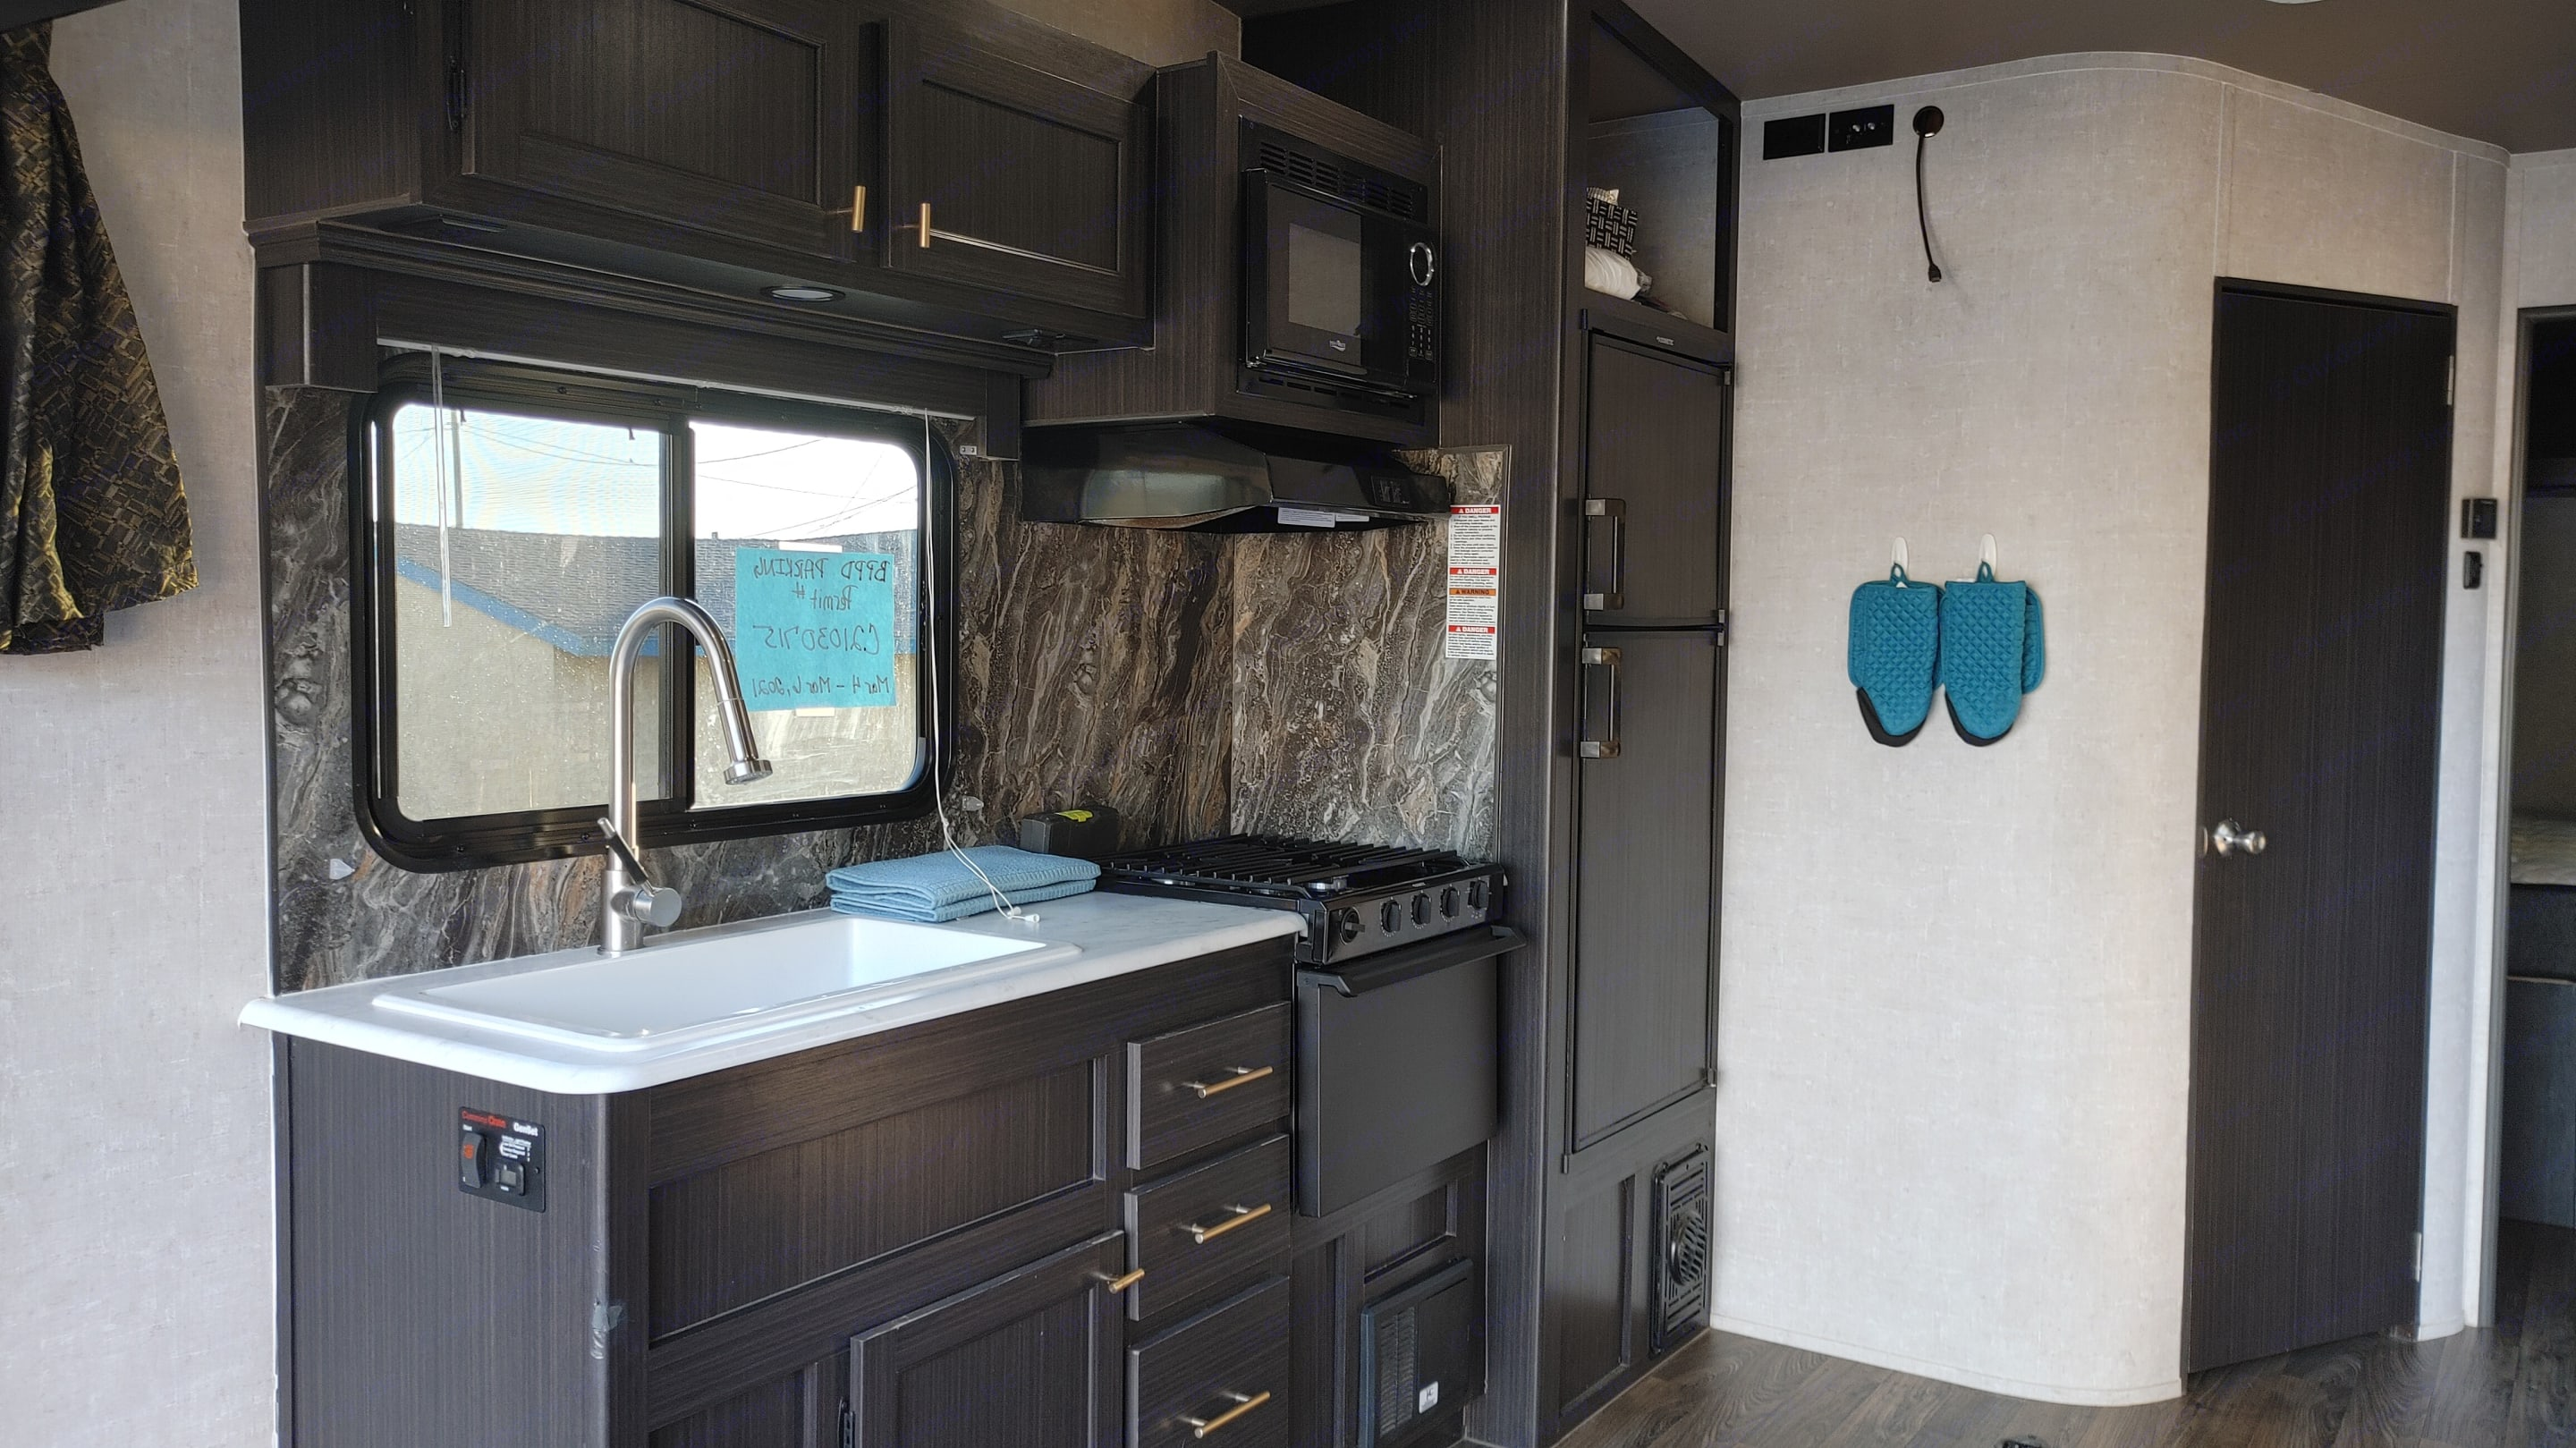 Drawers and Cabinets contain dish ware, silver ware, and cook ware. Eclipse Recreational Vehicles Attitude 2021